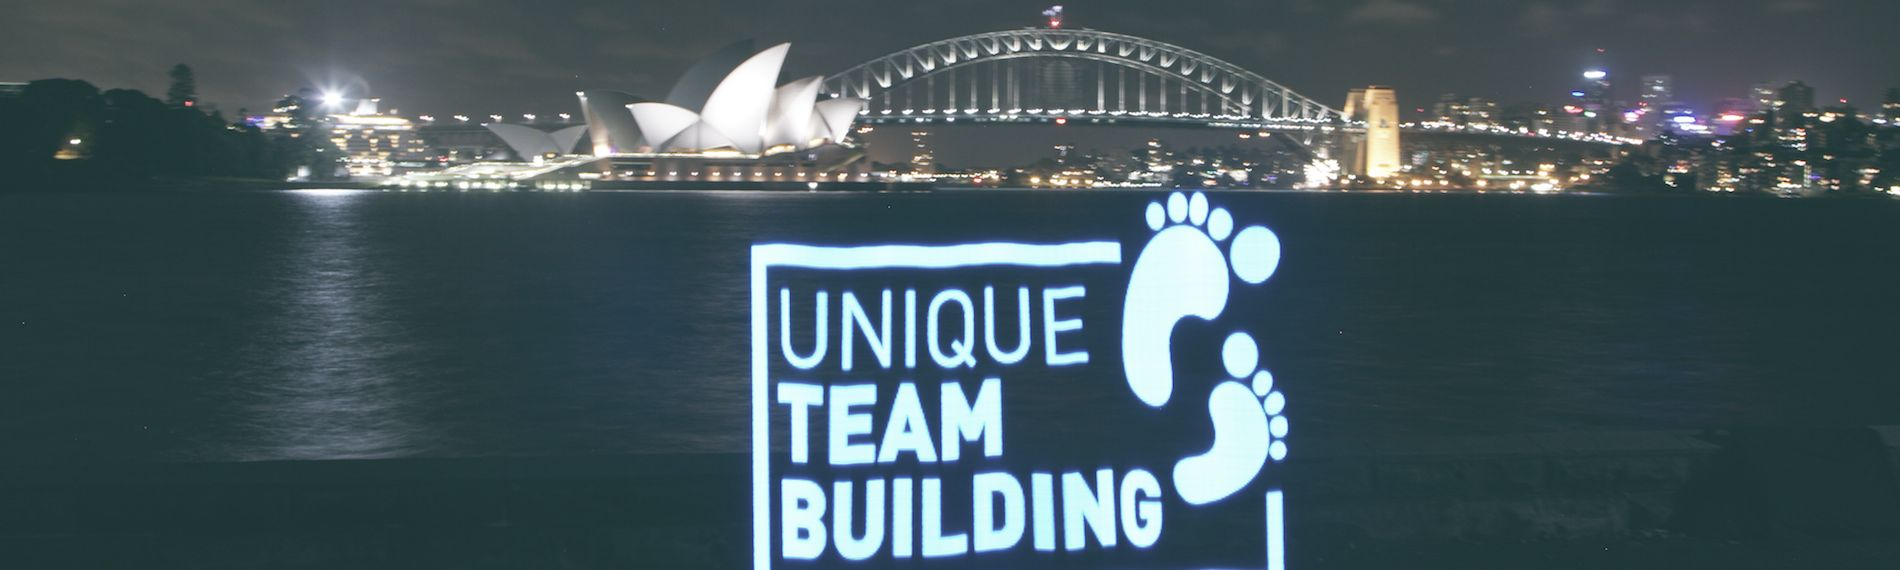 https://www.uniqueteambuilding.com.au/wp-content/uploads/2015/01/team-building-default-rot-1.jpg